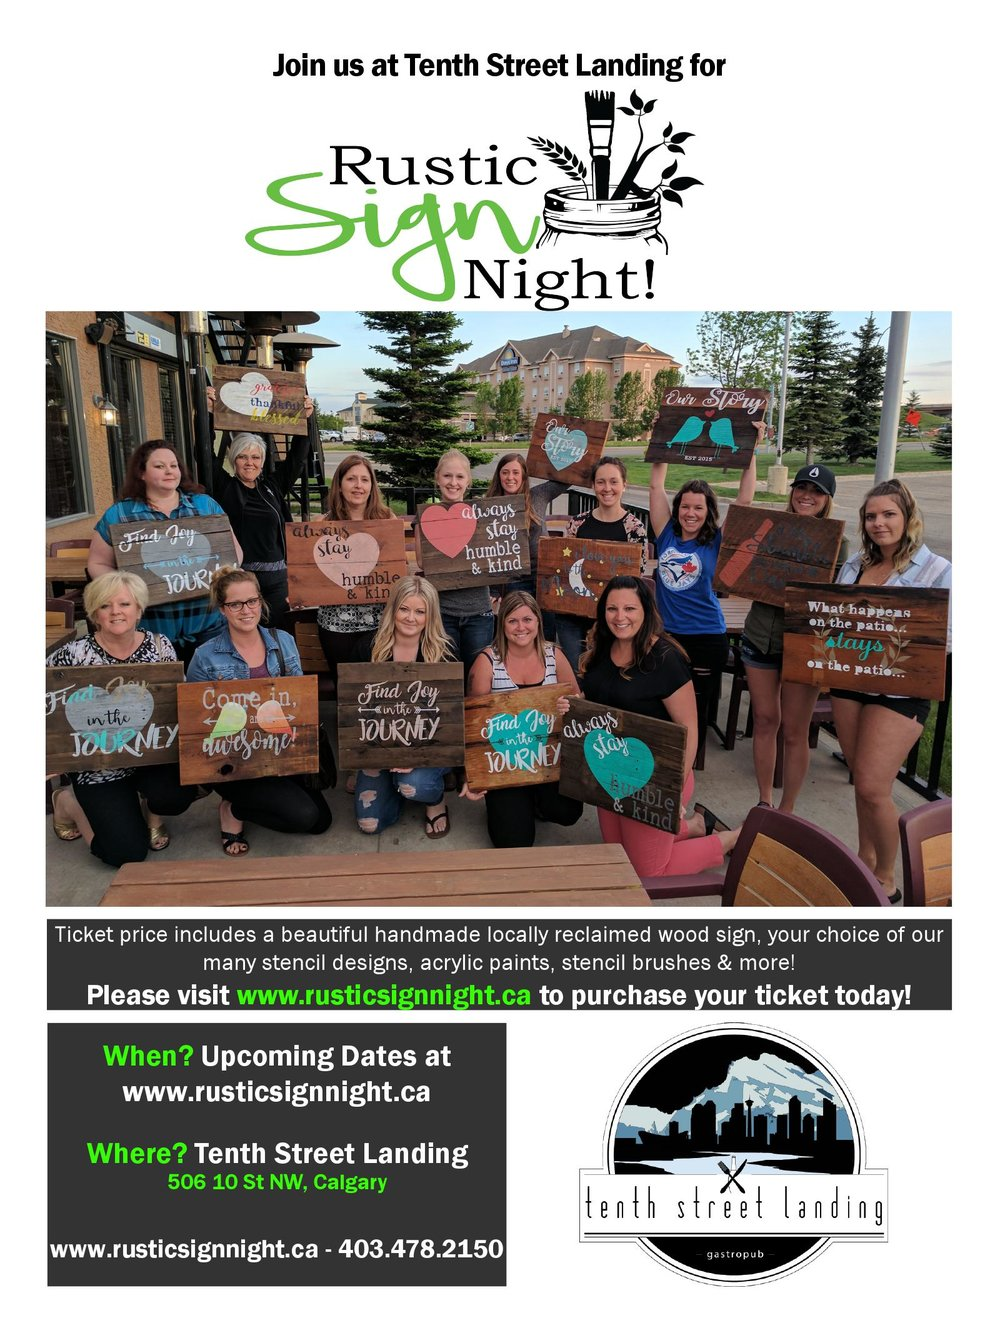 Tuesday Aug 15th 7pm and Sept 12 7pm are our next Rustic Sign Night